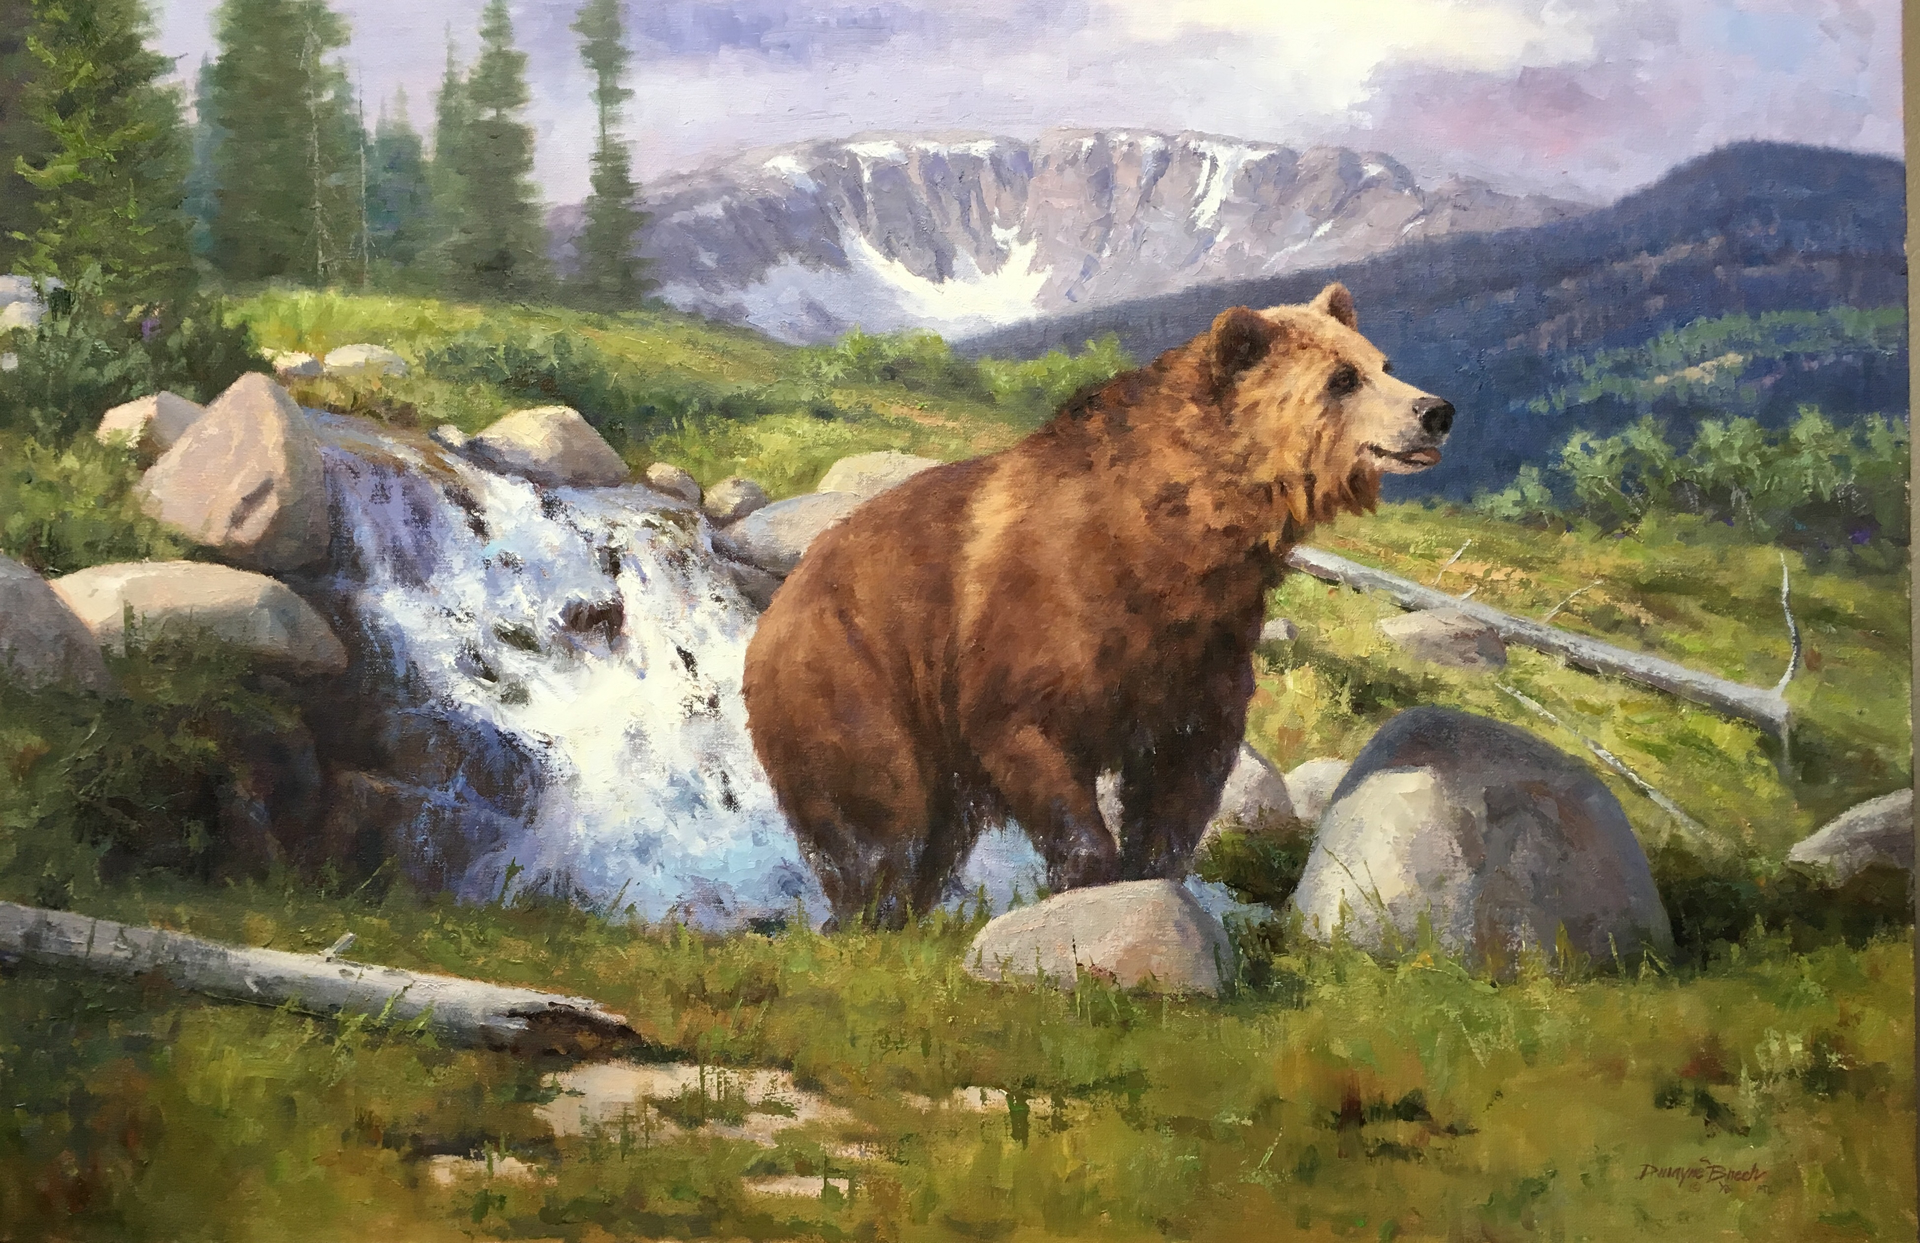 Runoff Refresher (Grizzly) by Dwayne Brech